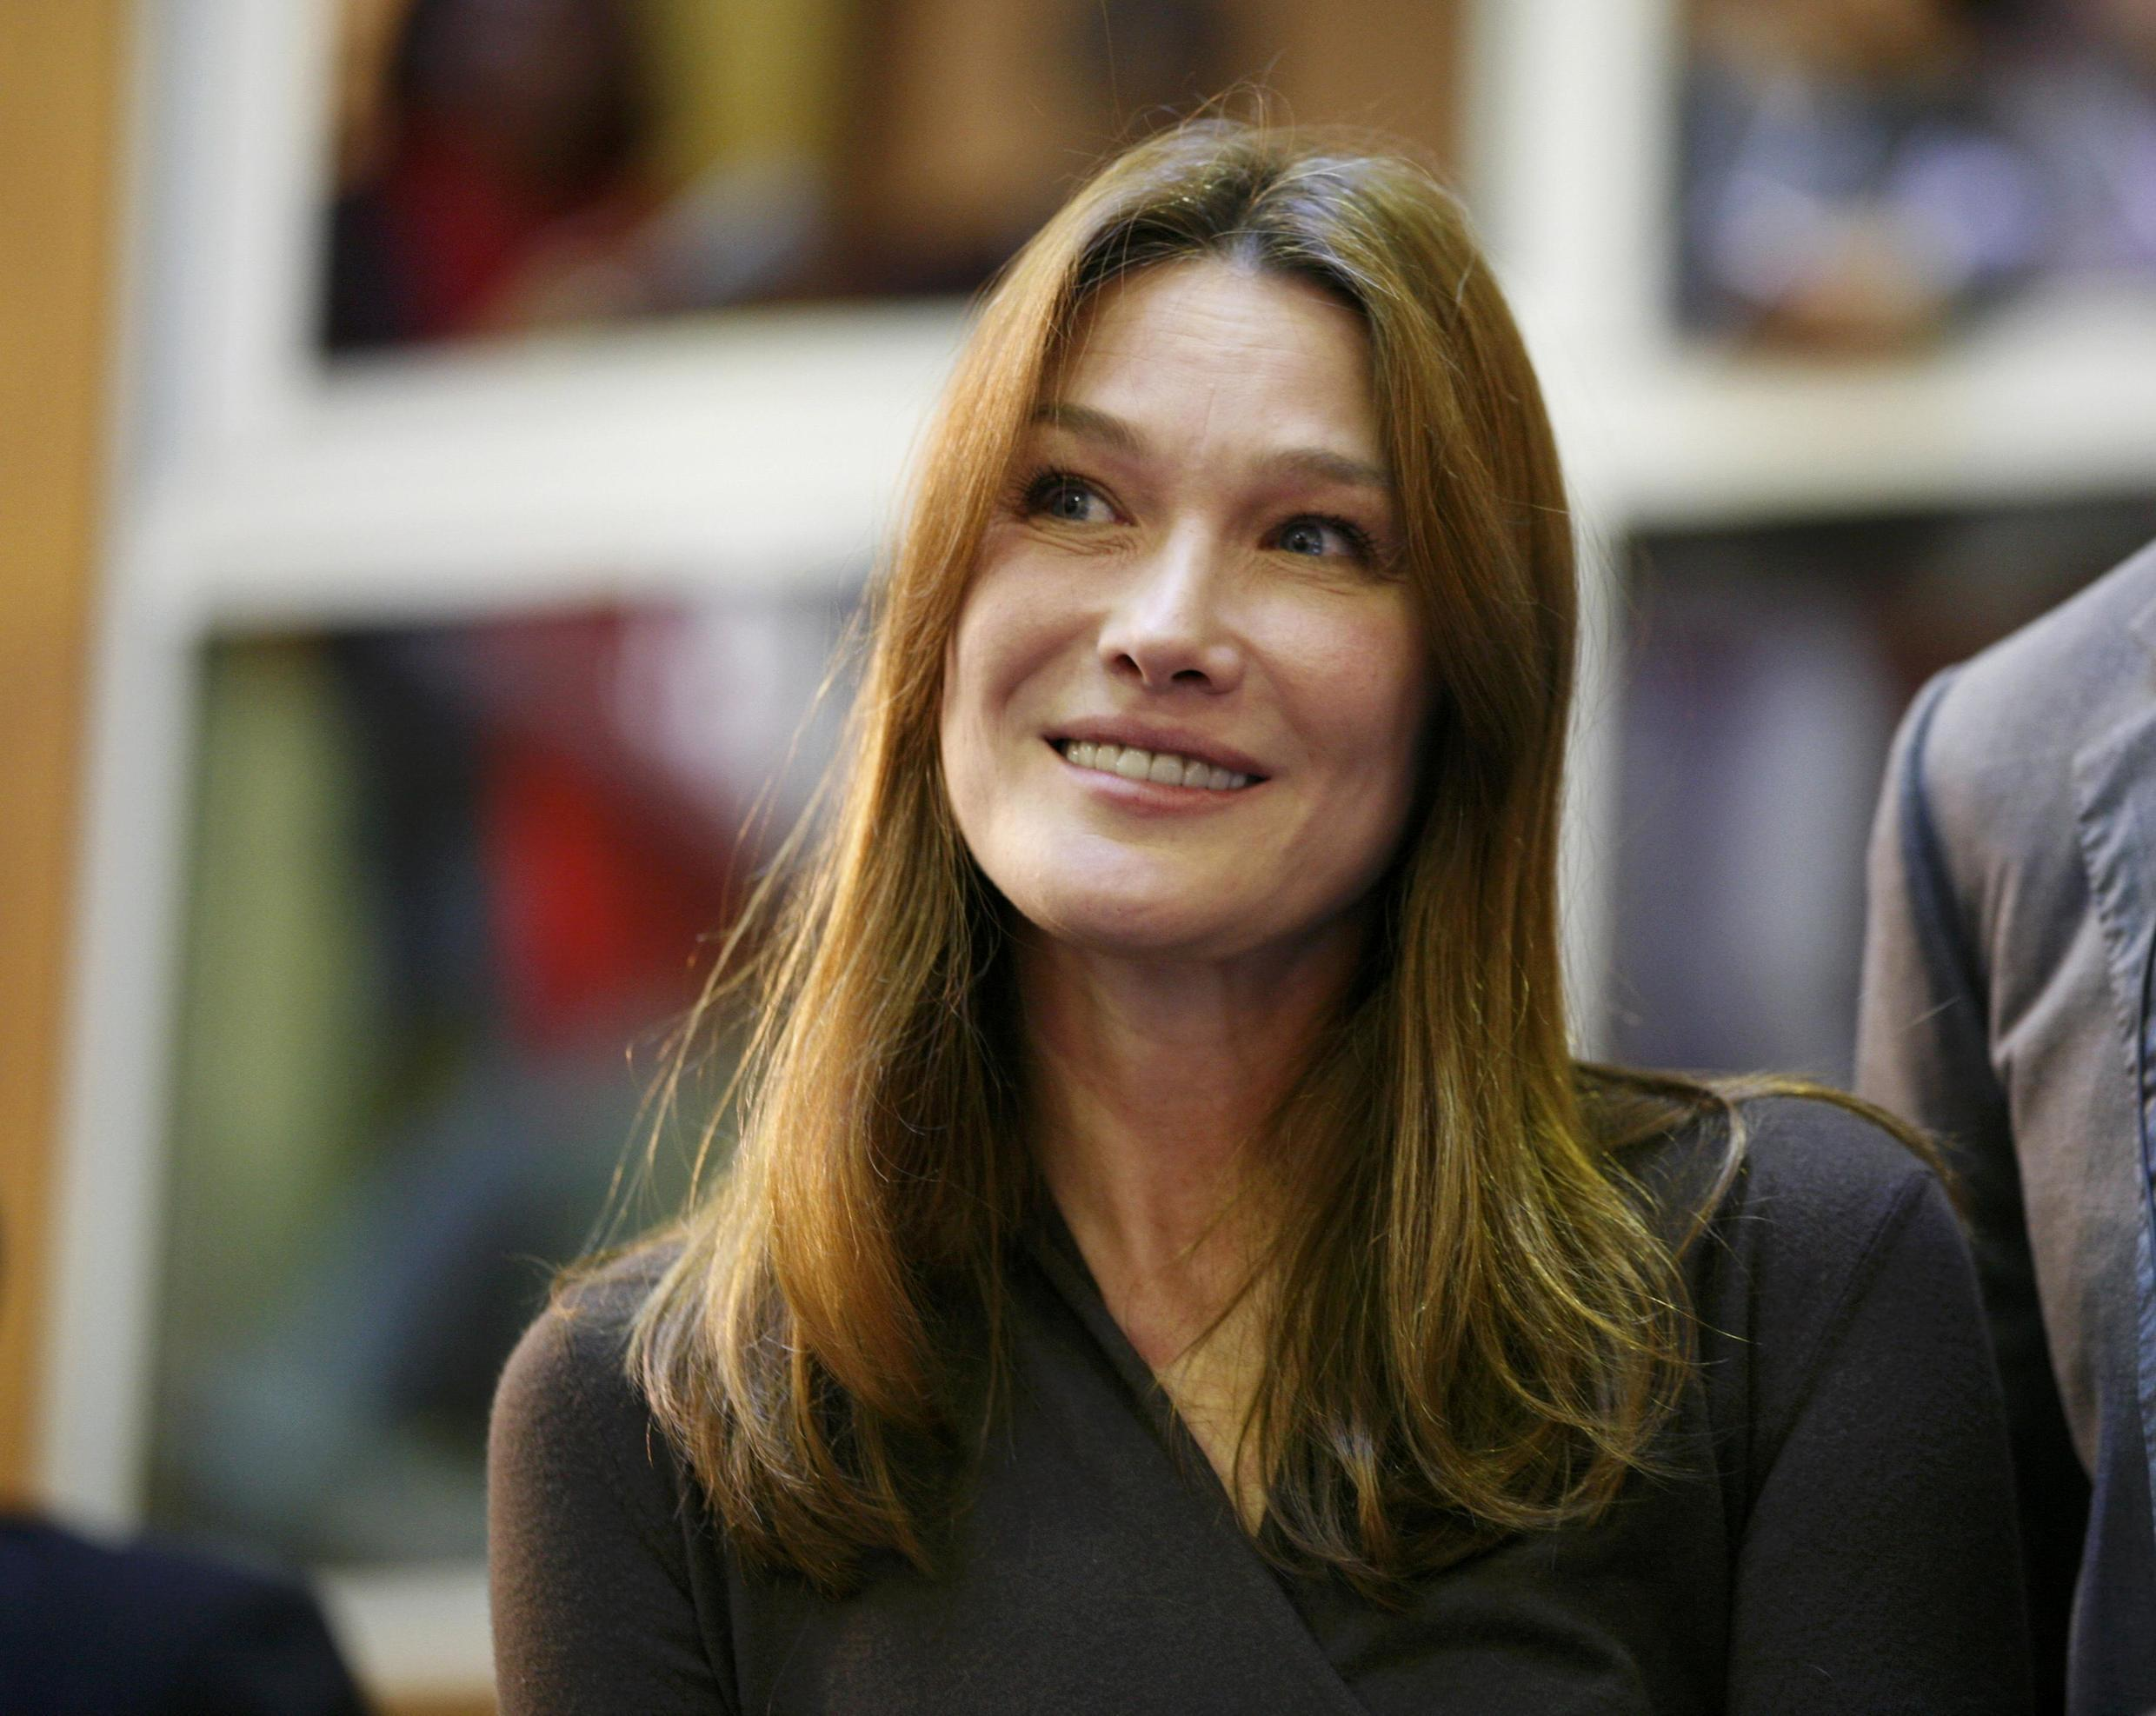 Carla Bruni-Sarkozy wielded the hammer at the charity auction